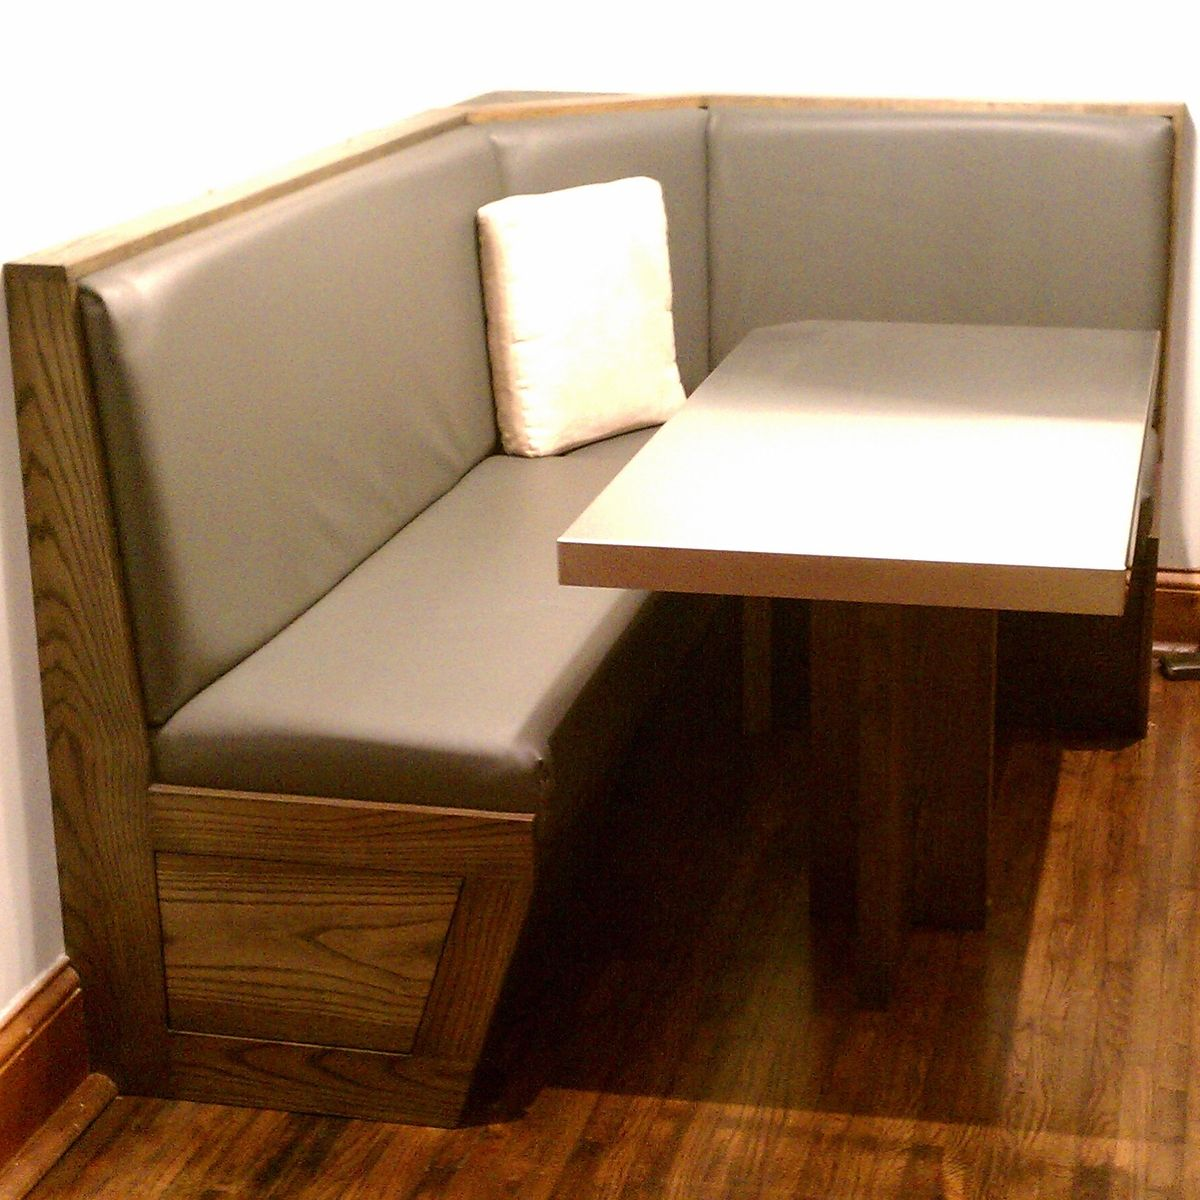 Custom Built In Booth And Table by Blue Company Inc  : 1271763003 from www.custommade.com size 1200 x 1200 jpeg 171kB